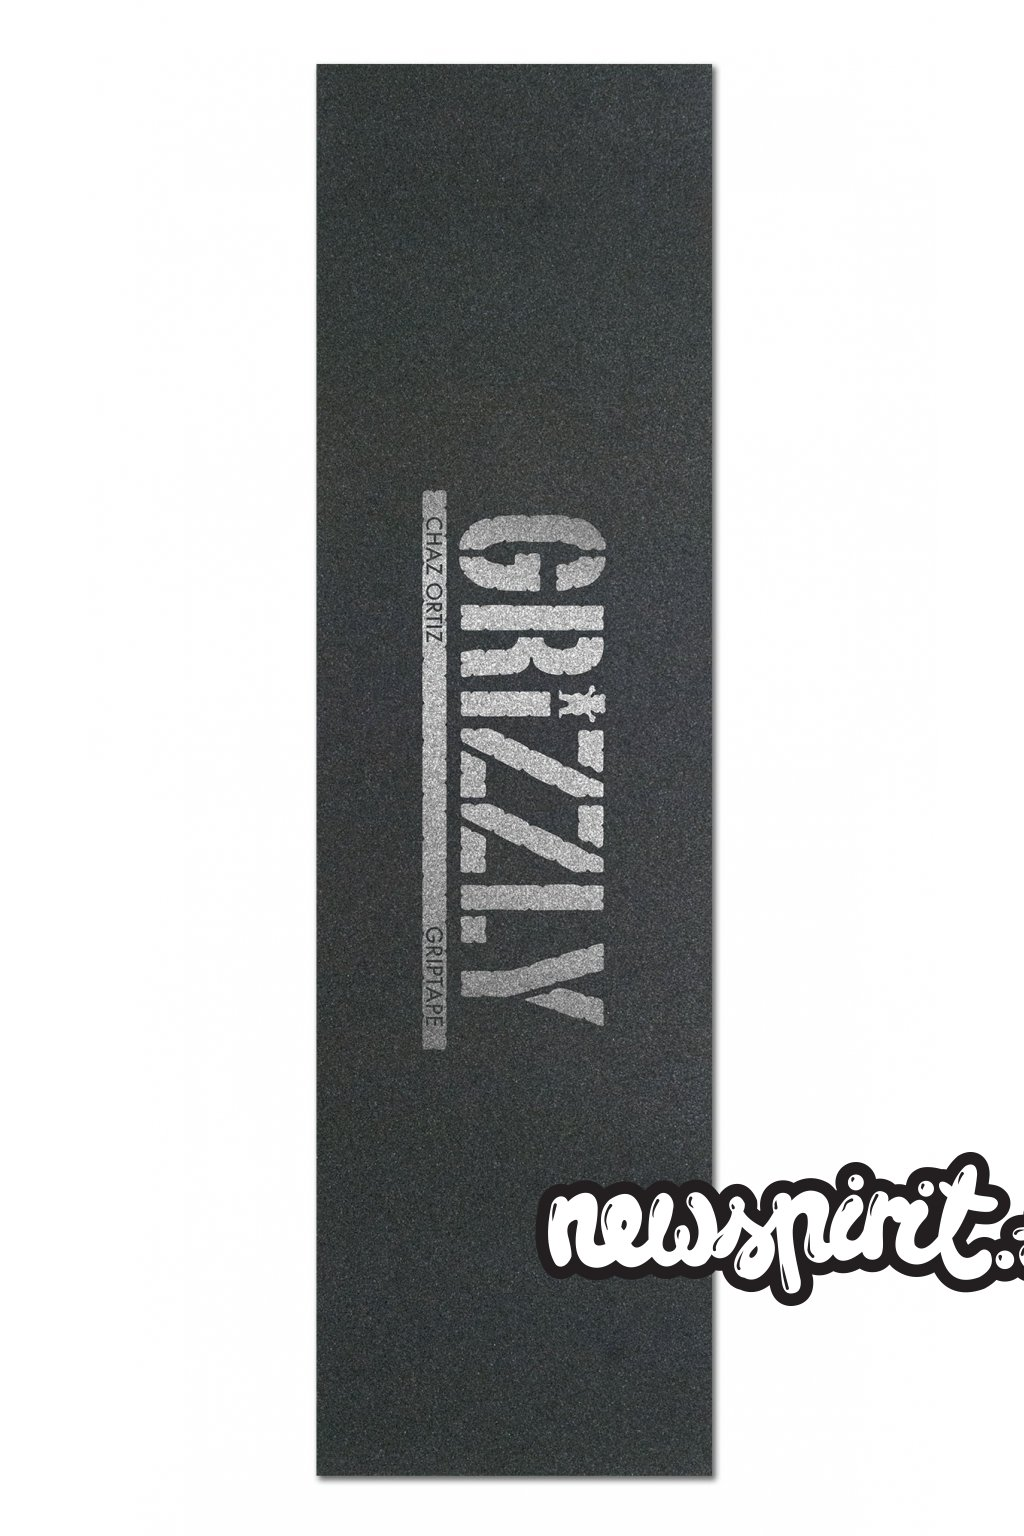 Grip Grizzly Chaz Ortilz 3M Silver